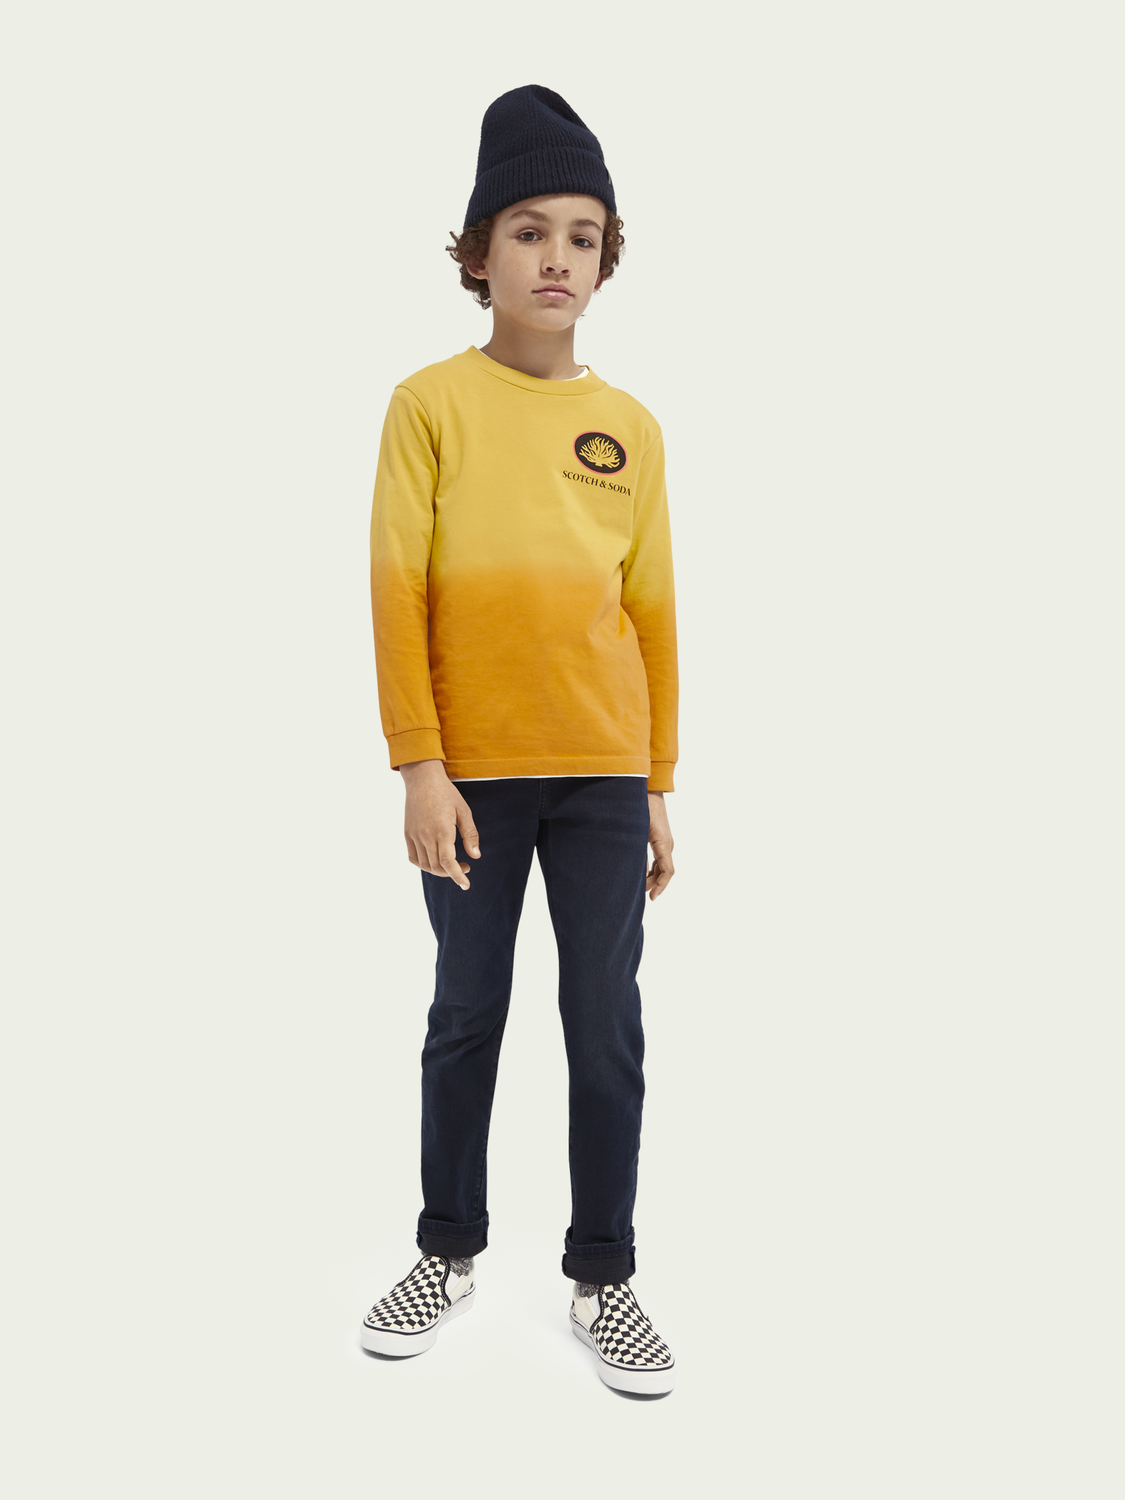 Kids Dip-dye long sleeved organic cotton T-shirt